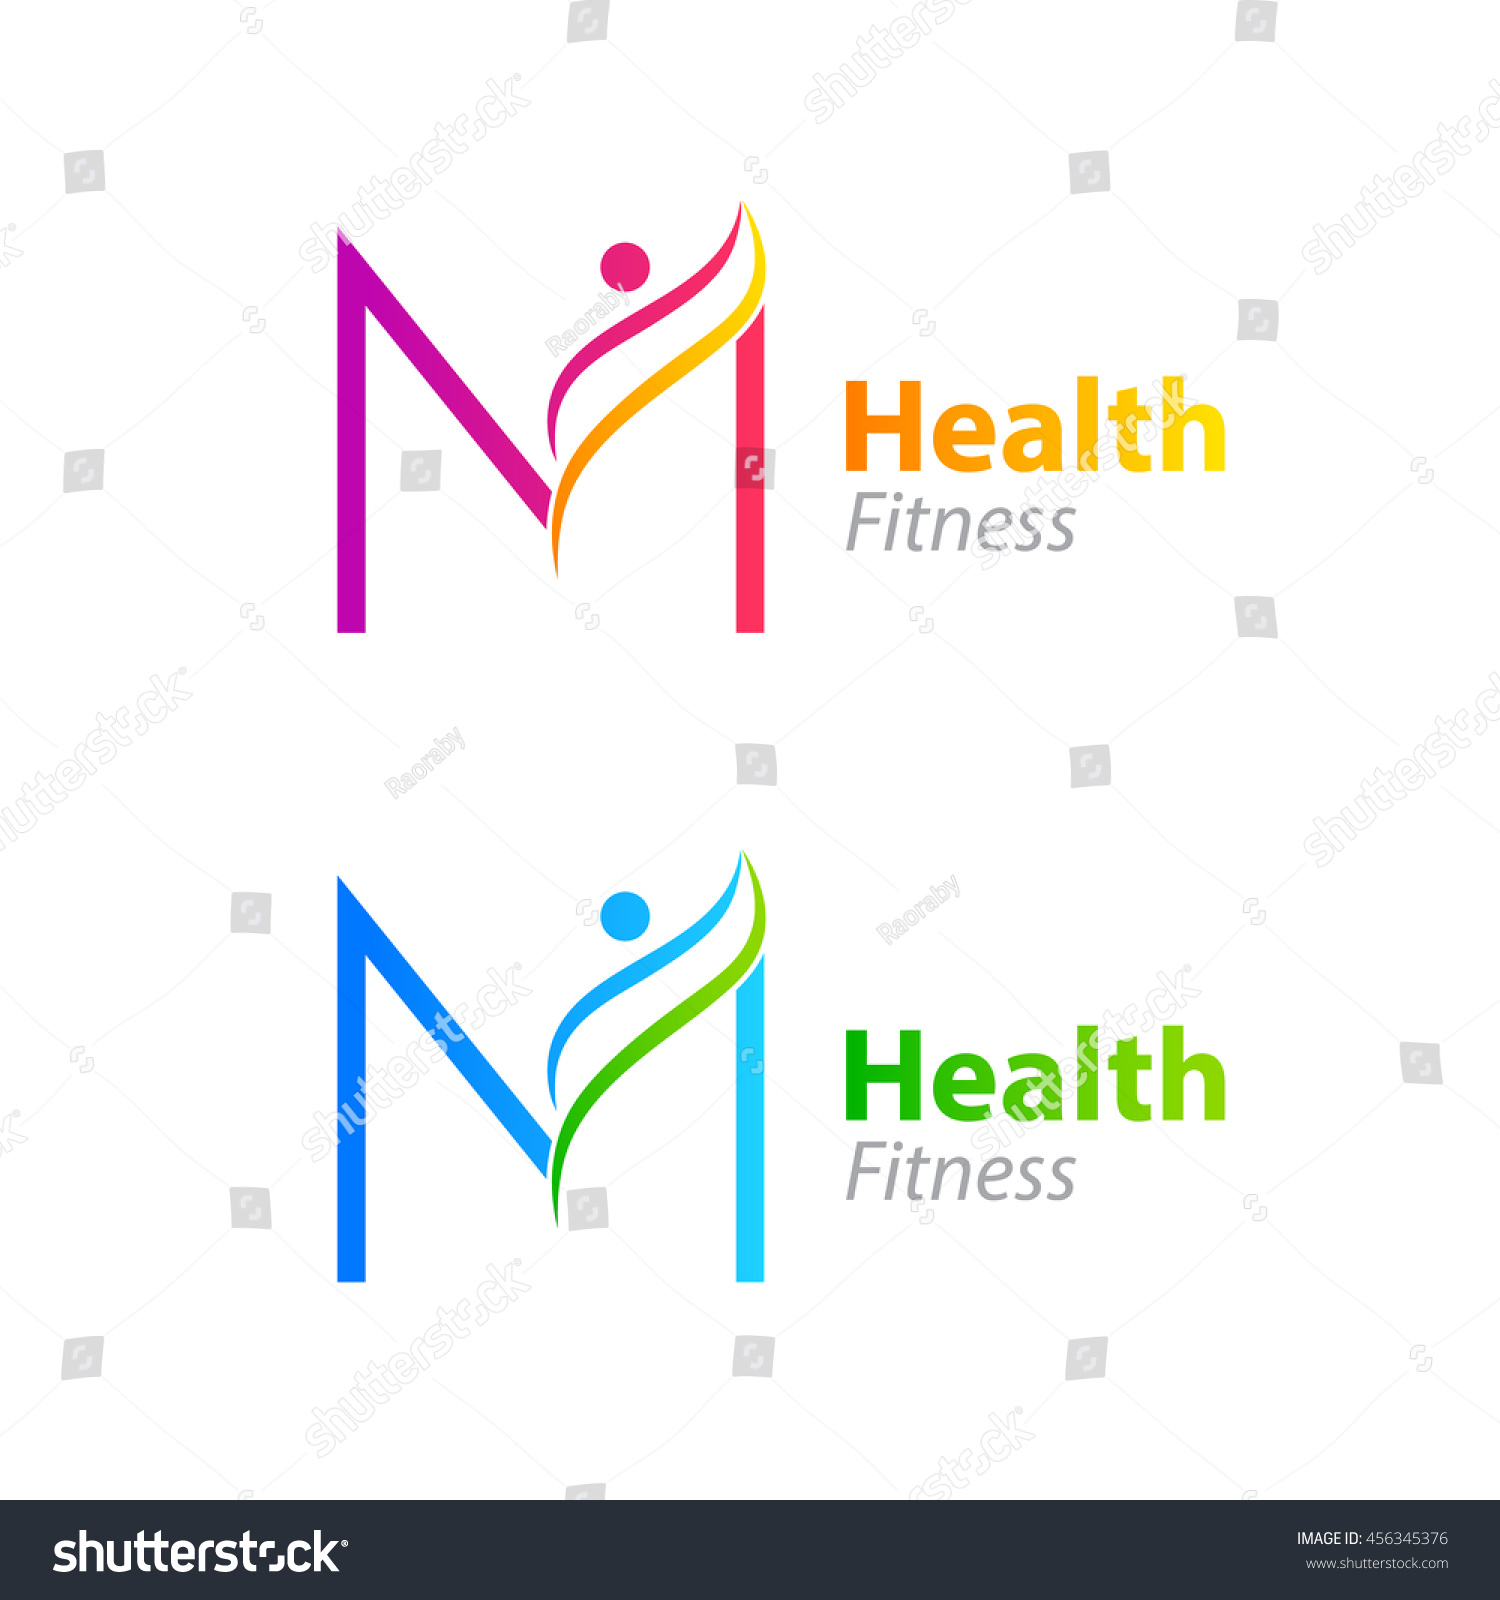 letter m logo stock vector image 63388199 abstract letter m logo design template stock vector 822